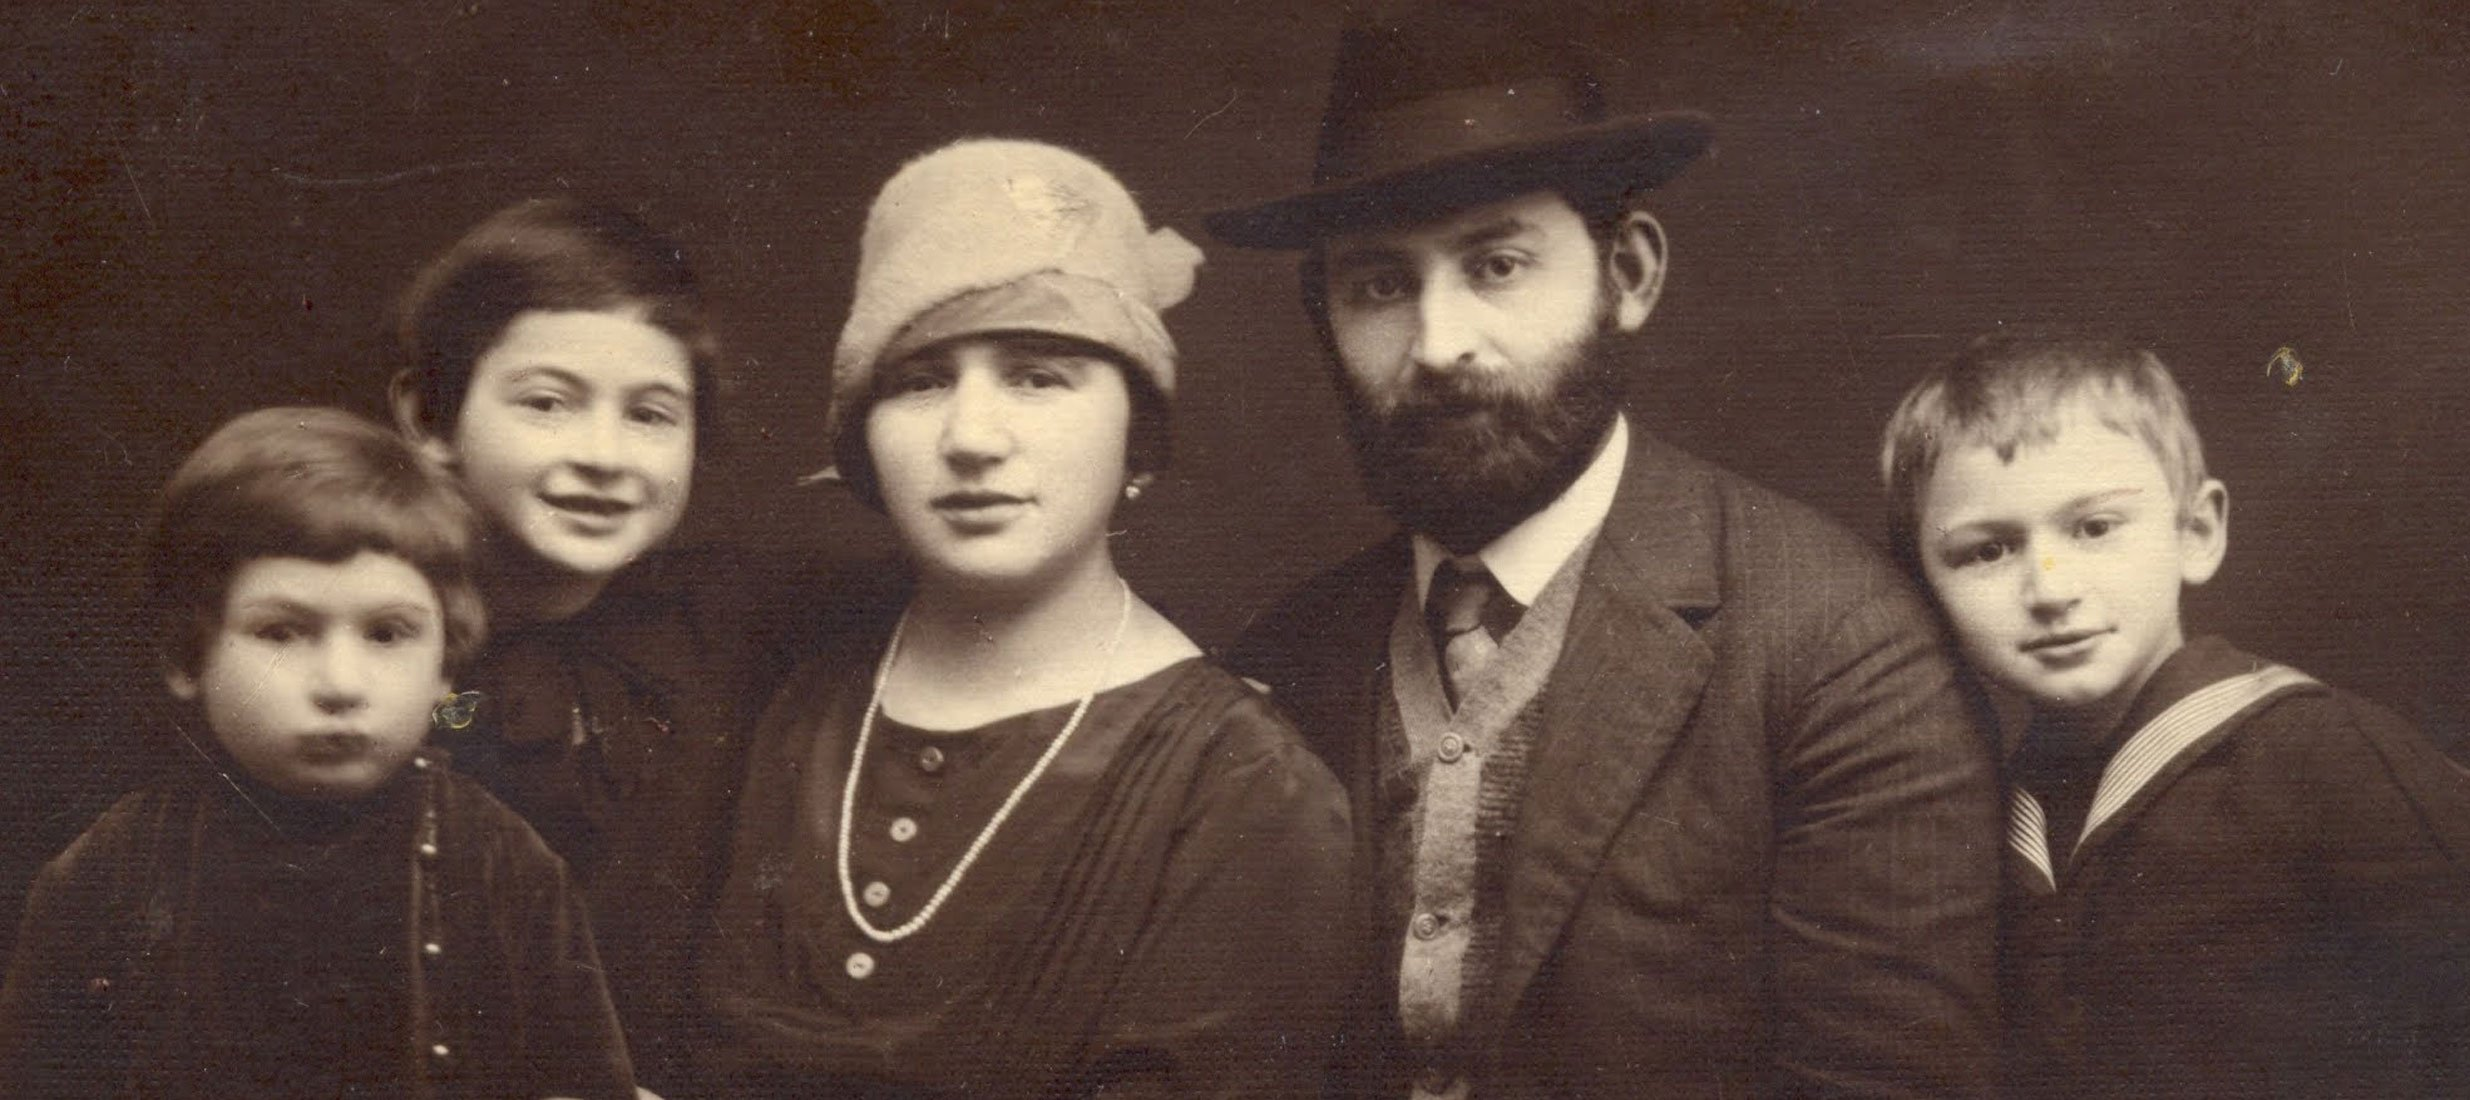 'My father understood the human soul': remembering the Jewish-Romanian author whose Holocaust stories continue to inspire compassion